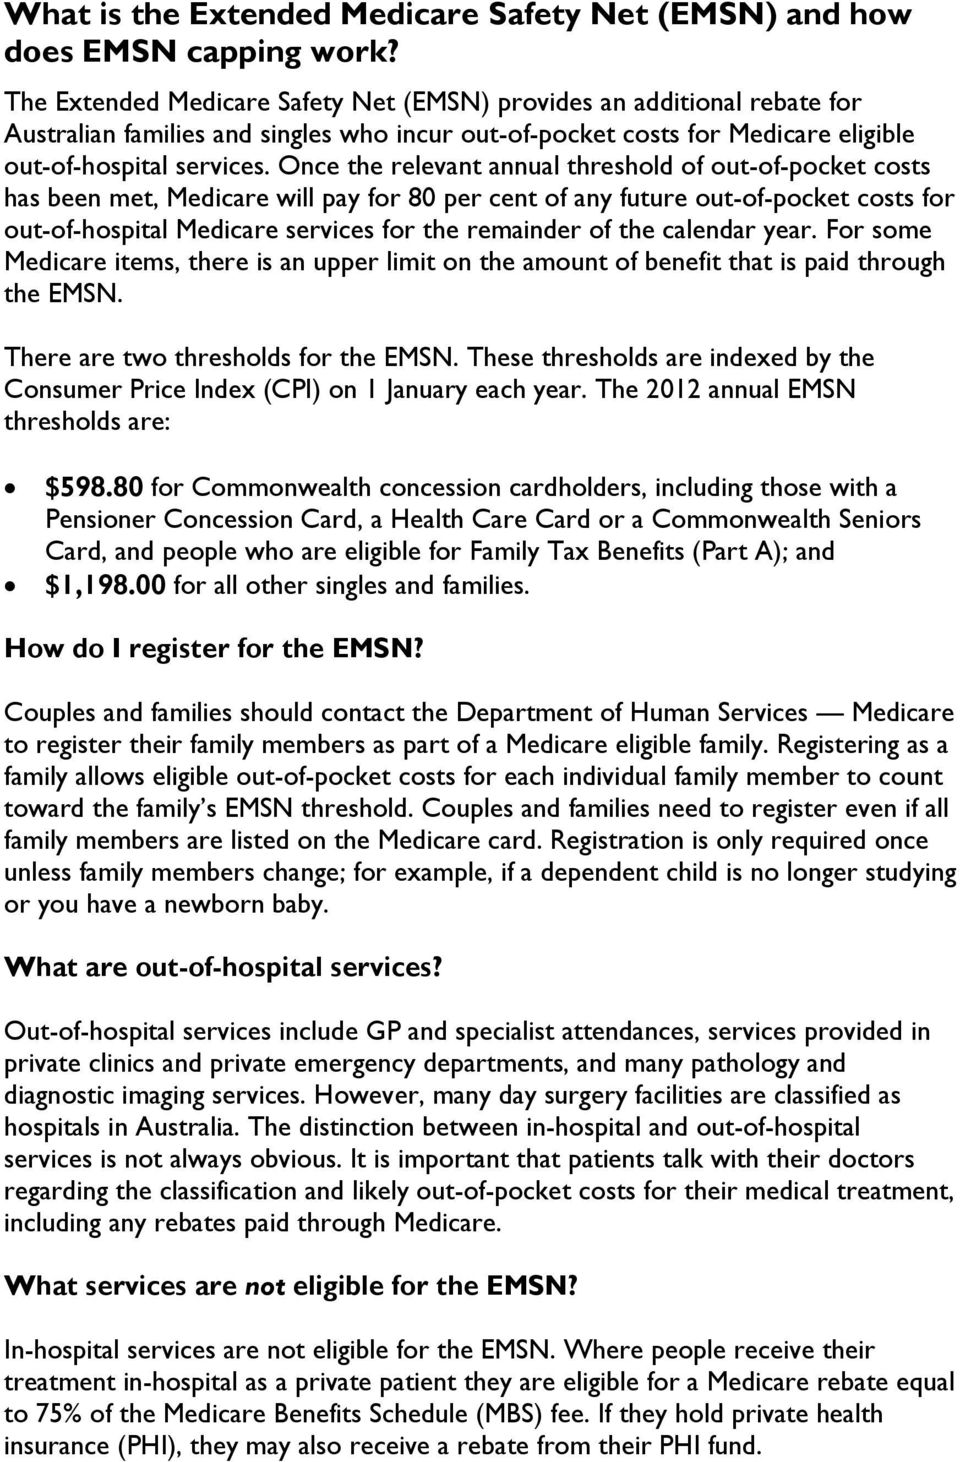 Once the relevant annual threshold of out-of-pocket costs has been met, Medicare will pay for 80 per cent of any future out-of-pocket costs for out-of-hospital Medicare services for the remainder of